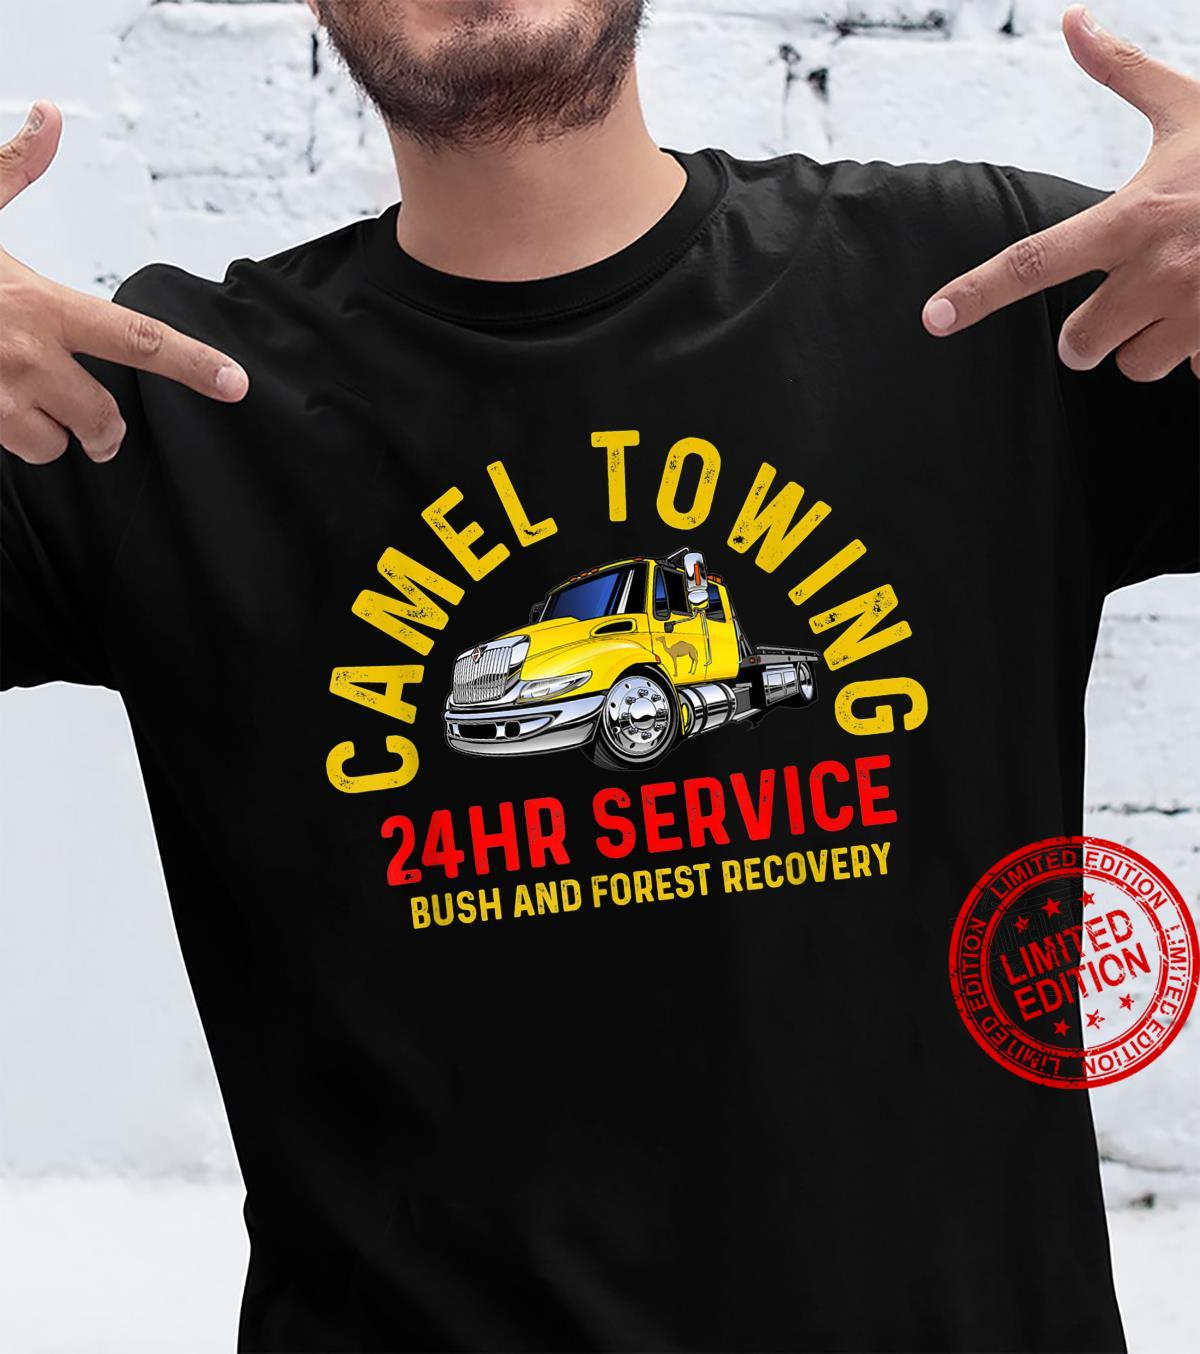 Camel towing 24hr recovery tow truck drivers Shirt